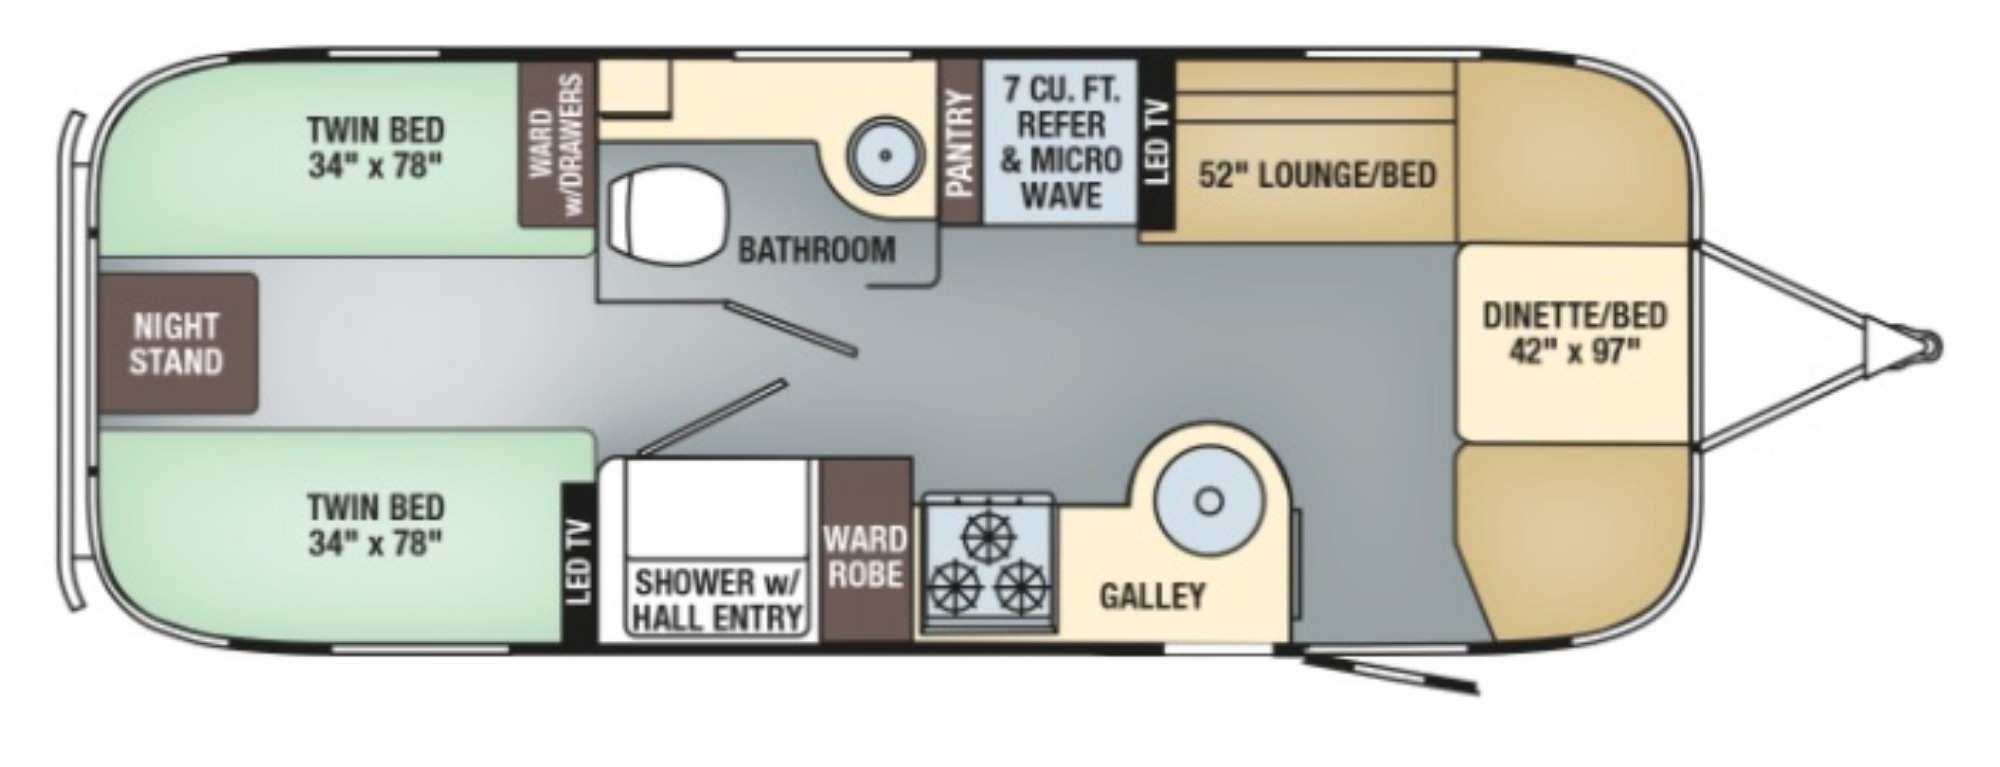 Exterior : 2019-AIRSTREAM-25RB TWIN